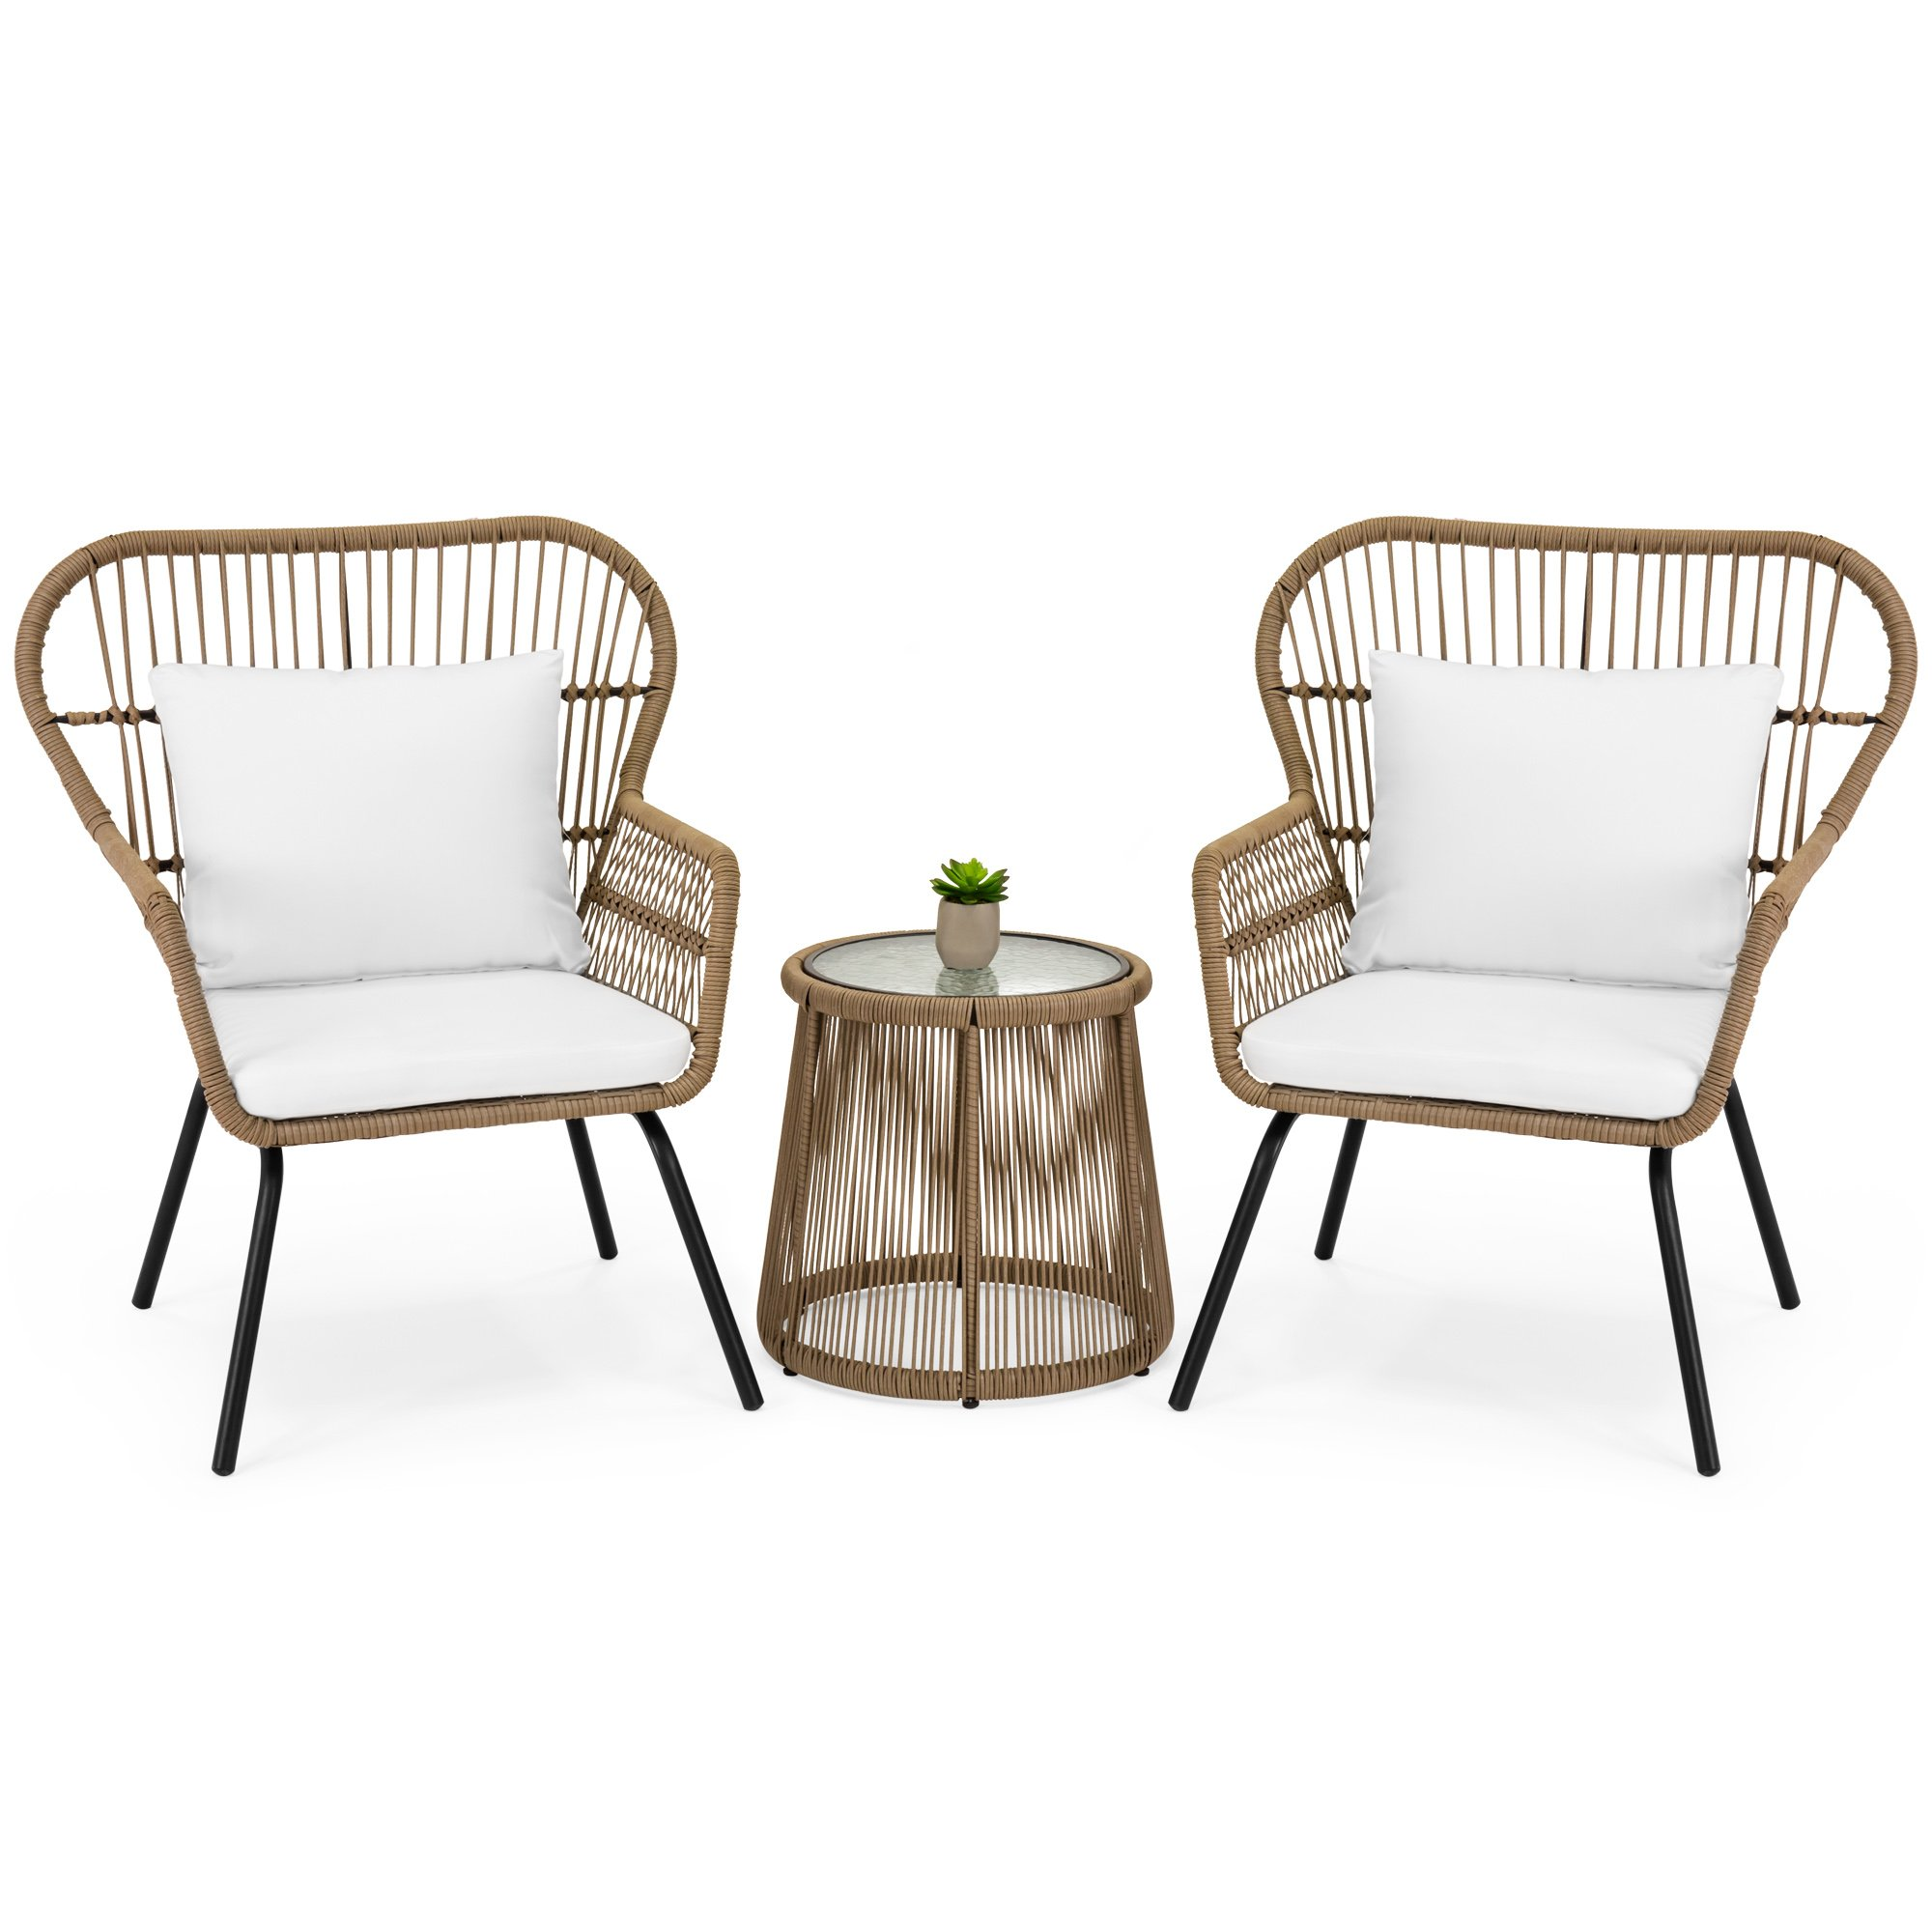 Best Choice Products 3-Piece Patio Wicker Conversation Bistro Set w/ 2 Chairs, Side Table, Cushions - Tan